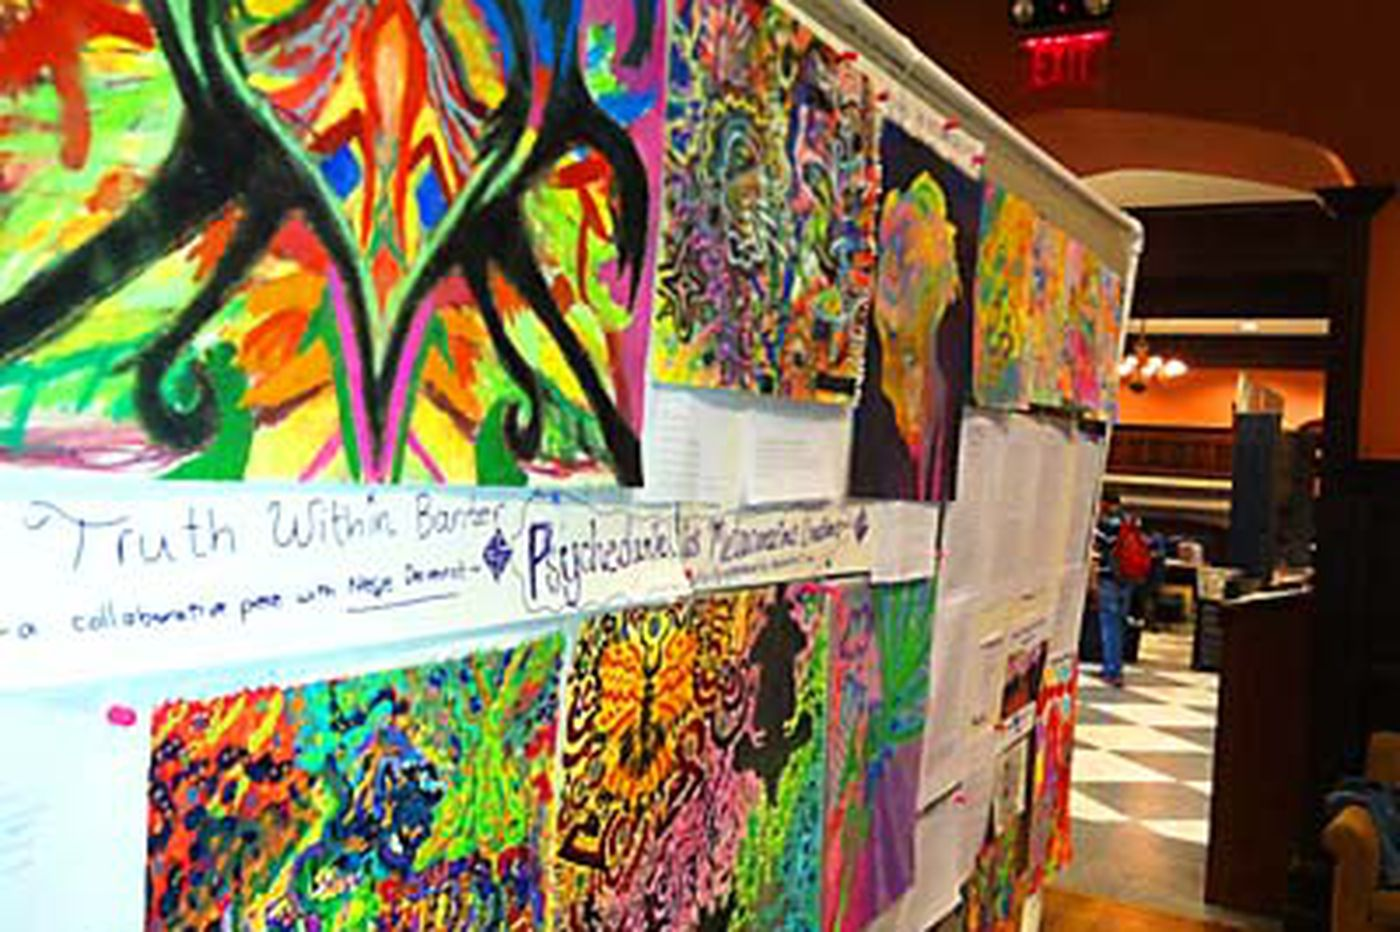 Far out: A psychedelic gathering at Penn